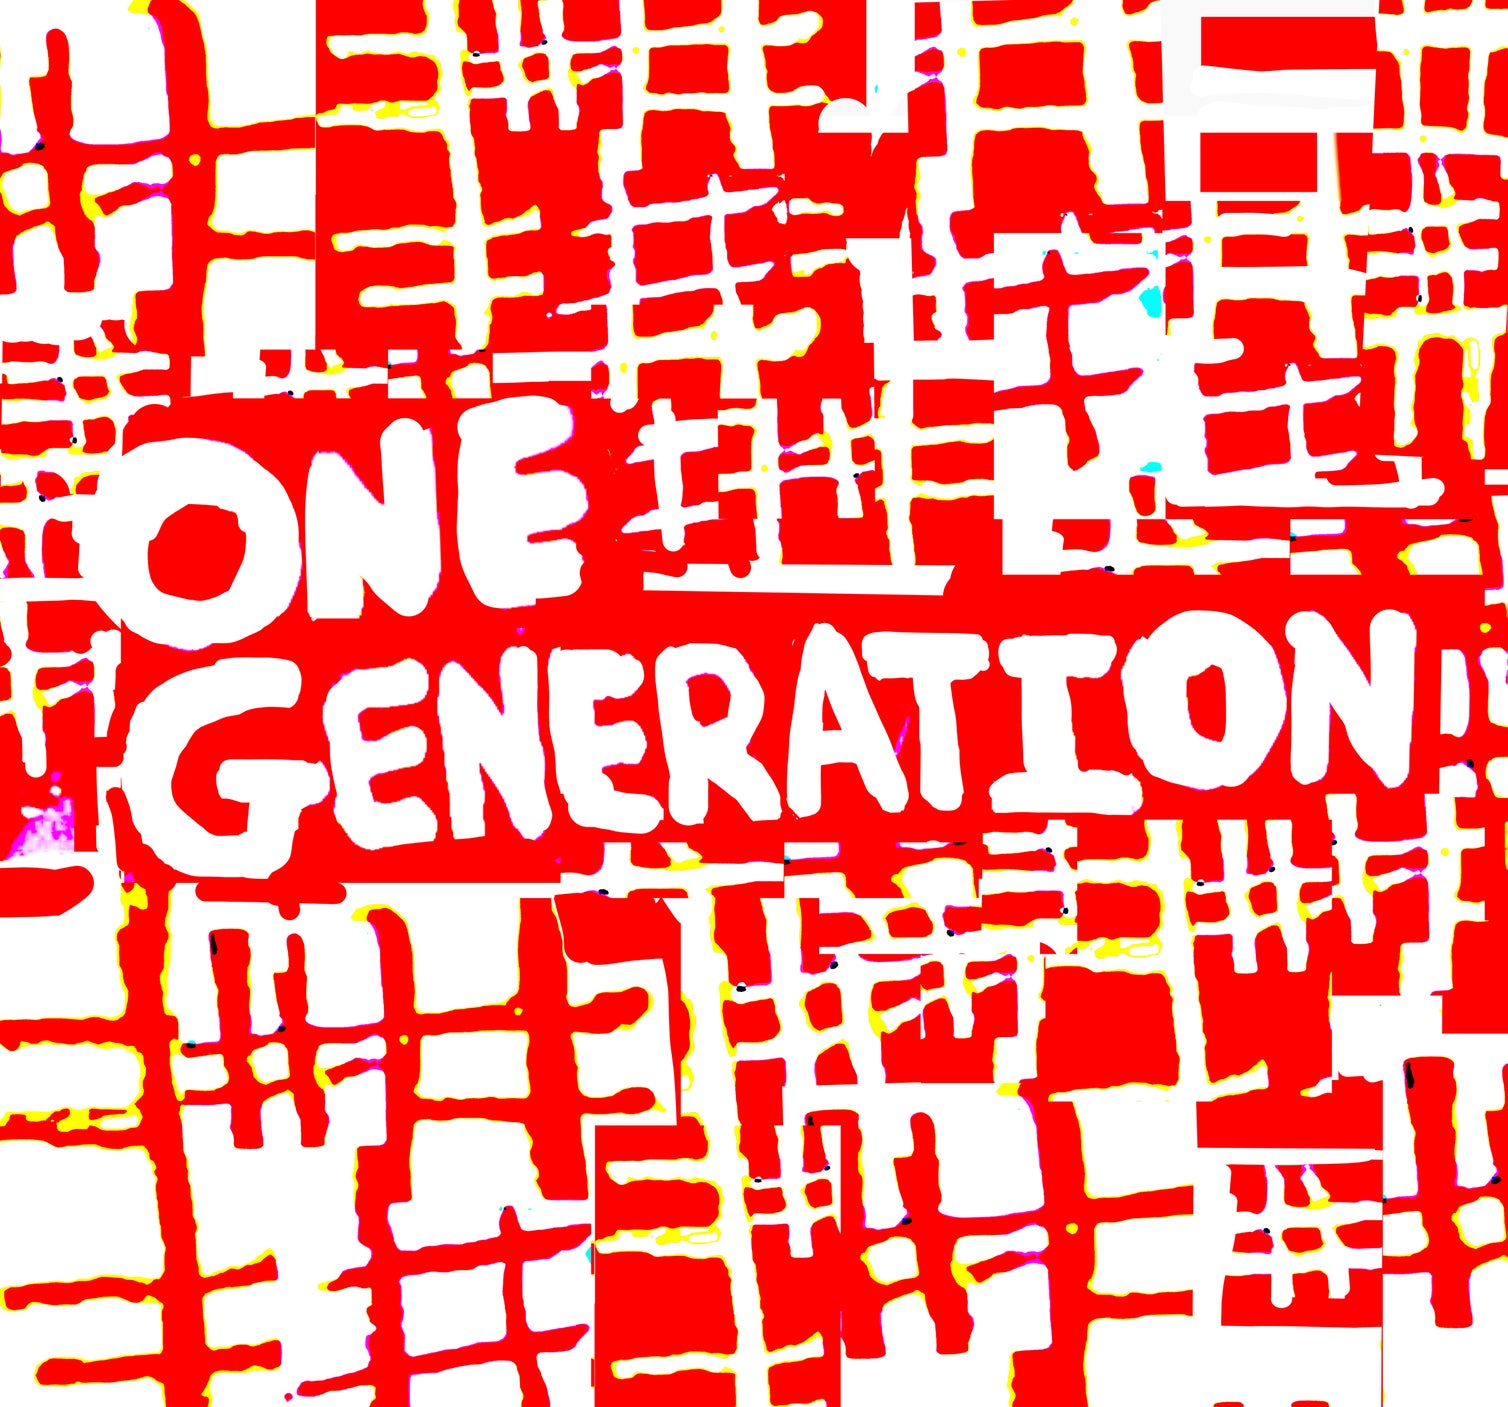 One Generation Clothing